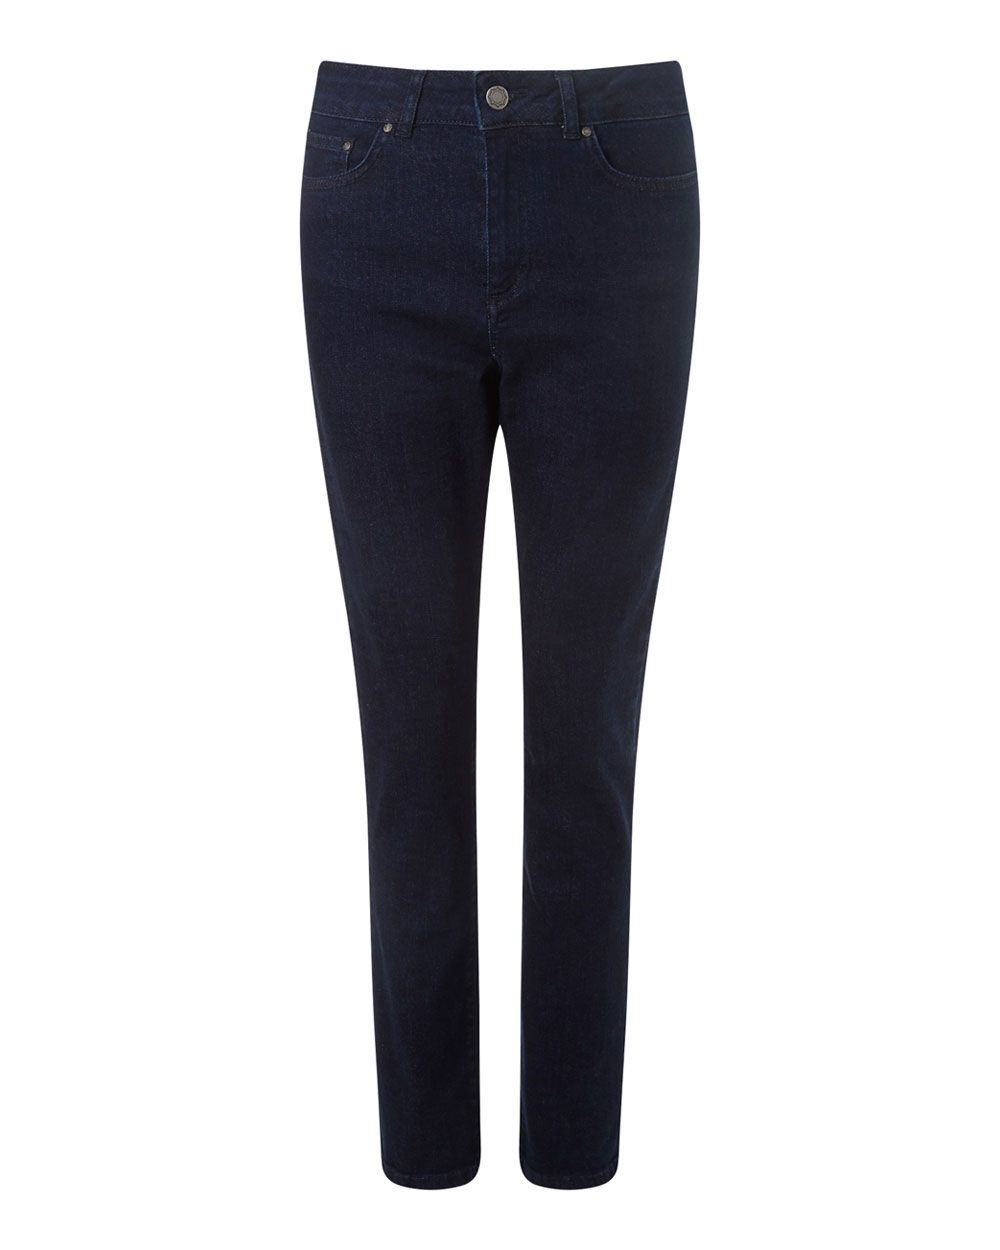 Straight Leg Denim Jean, Dark Blue - length: standard; pattern: plain; pocket detail: traditional 5 pocket; style: slim leg; waist: mid/regular rise; predominant colour: navy; occasions: casual; fibres: cotton - stretch; texture group: denim; pattern type: fabric; season: a/w 2015; wardrobe: basic